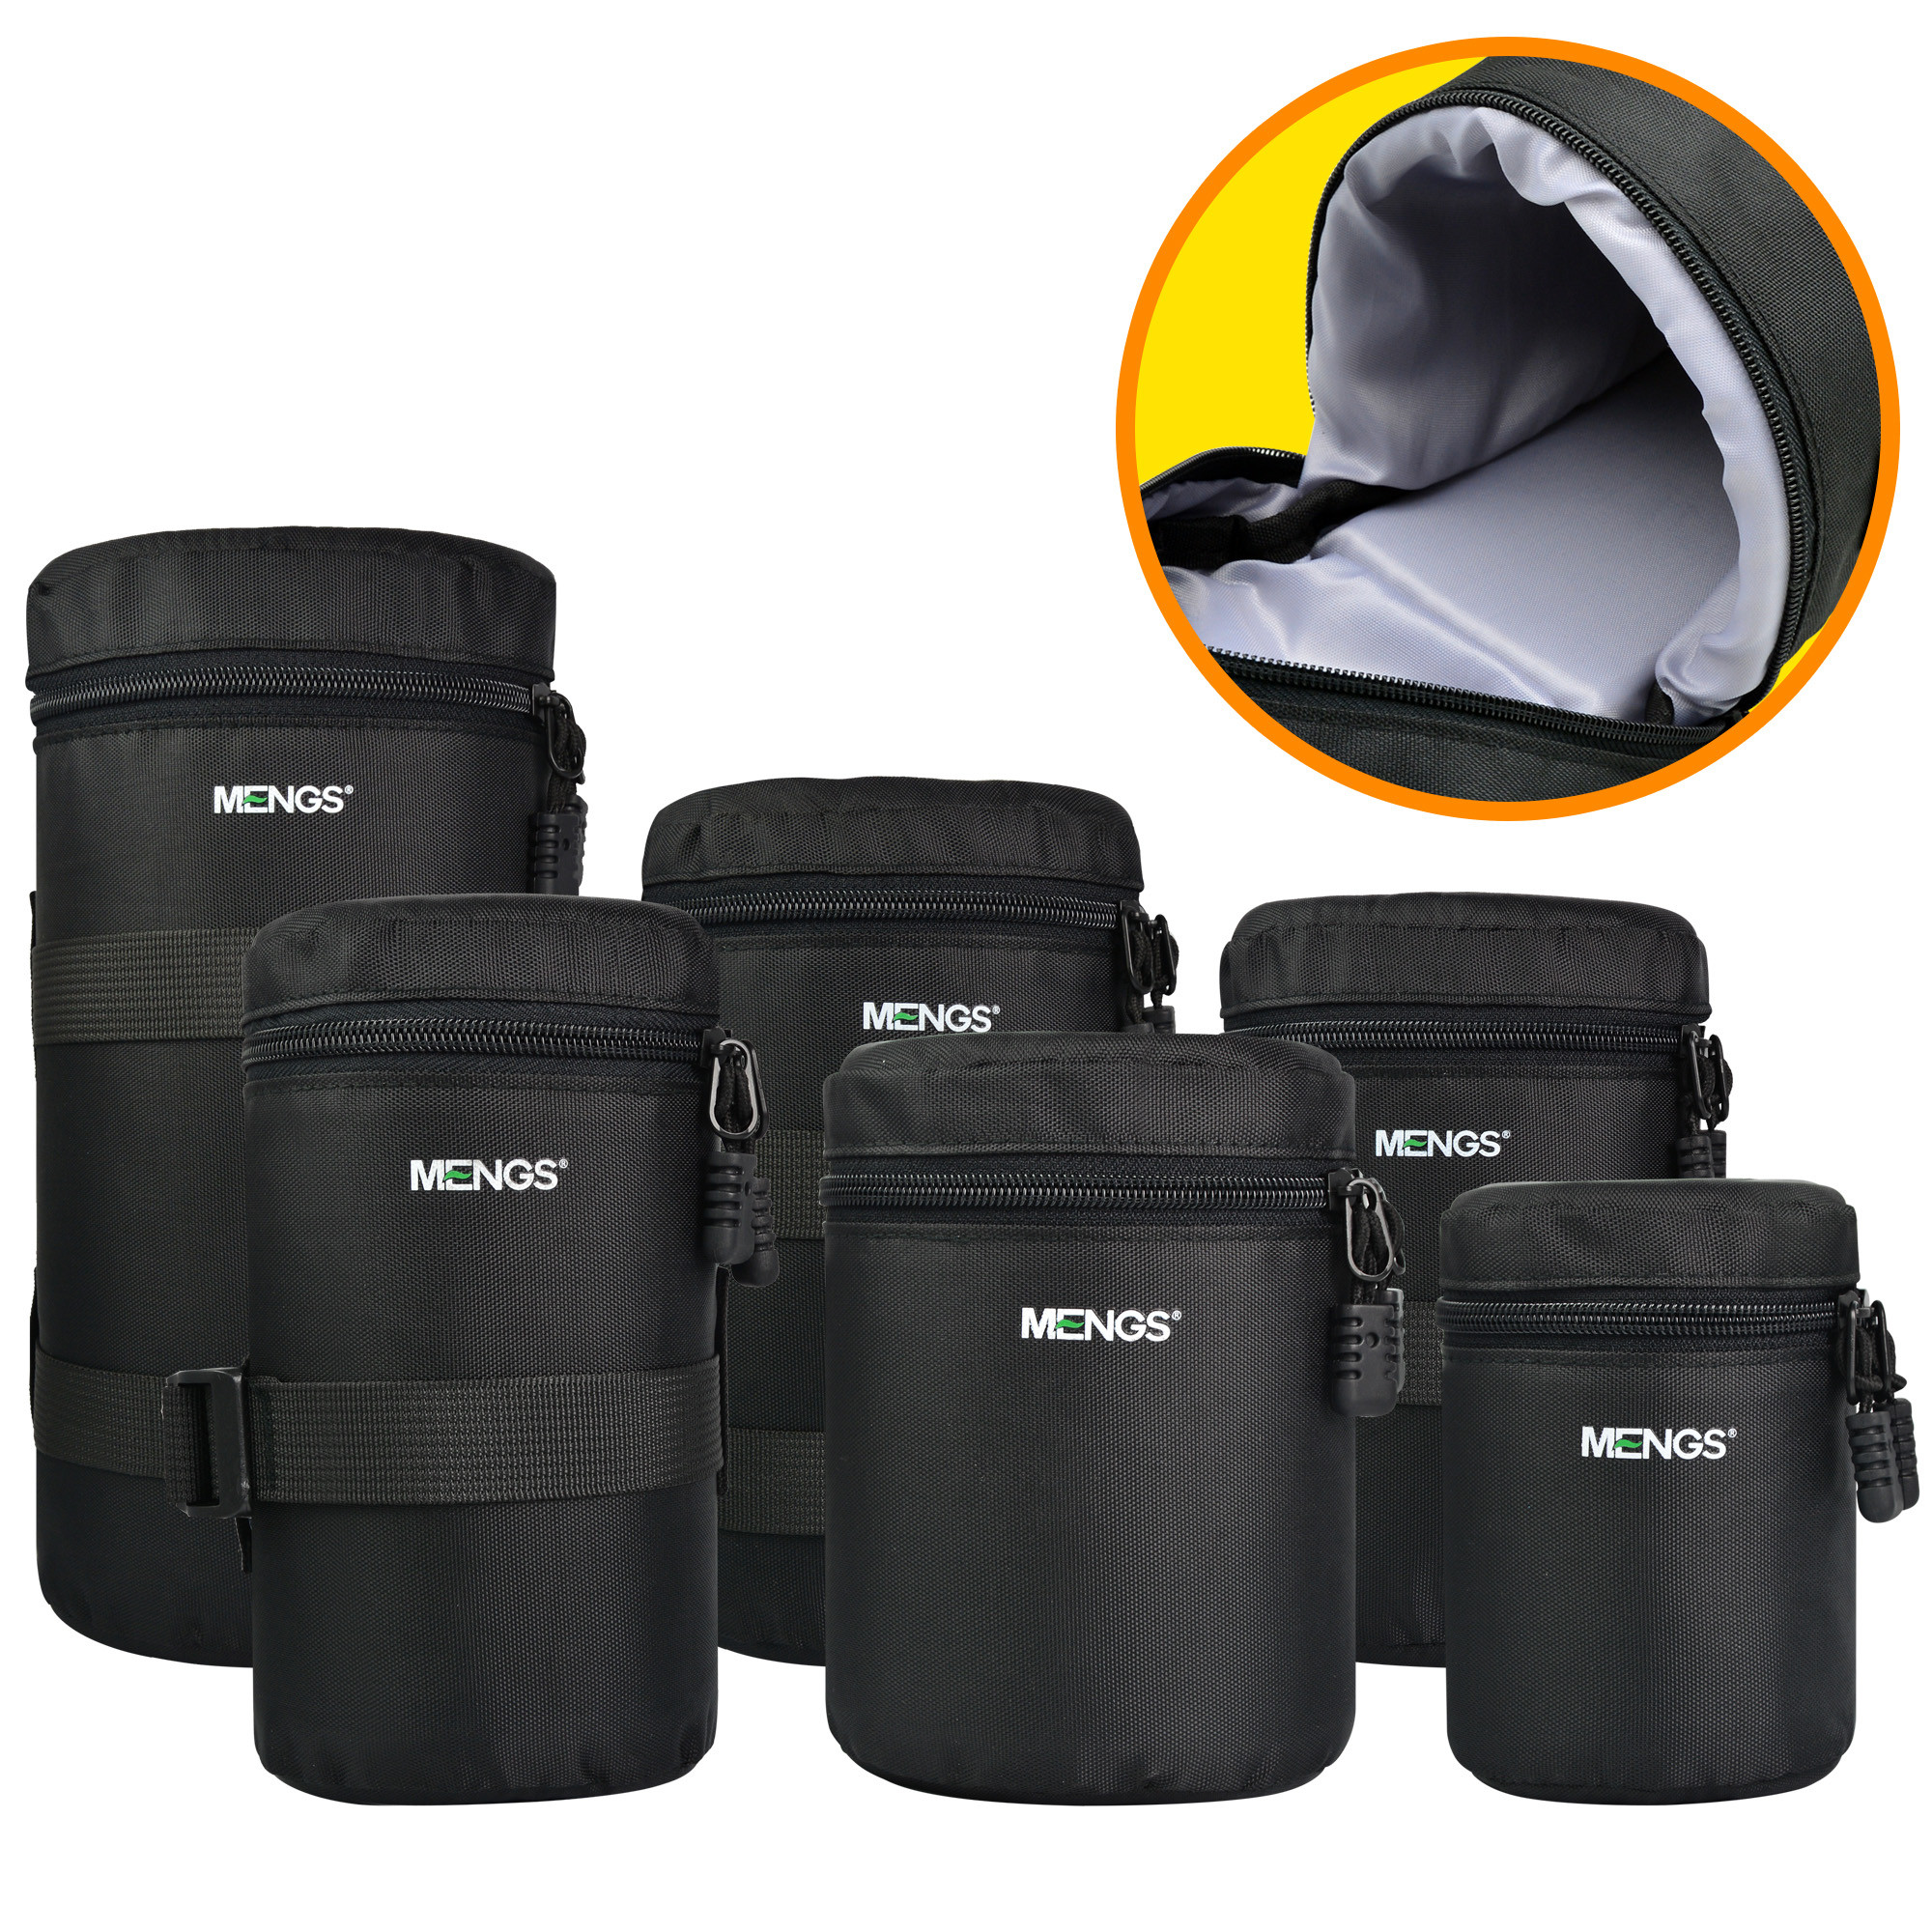 MENGS® 6 Sizes Multi Pack (S, M, L, XL, XXL, XXXL ) Nylon material Padded camera lens bag Lens Barrel Bags case pouch suit for Canon Nikon Sony Camera etc DSLR